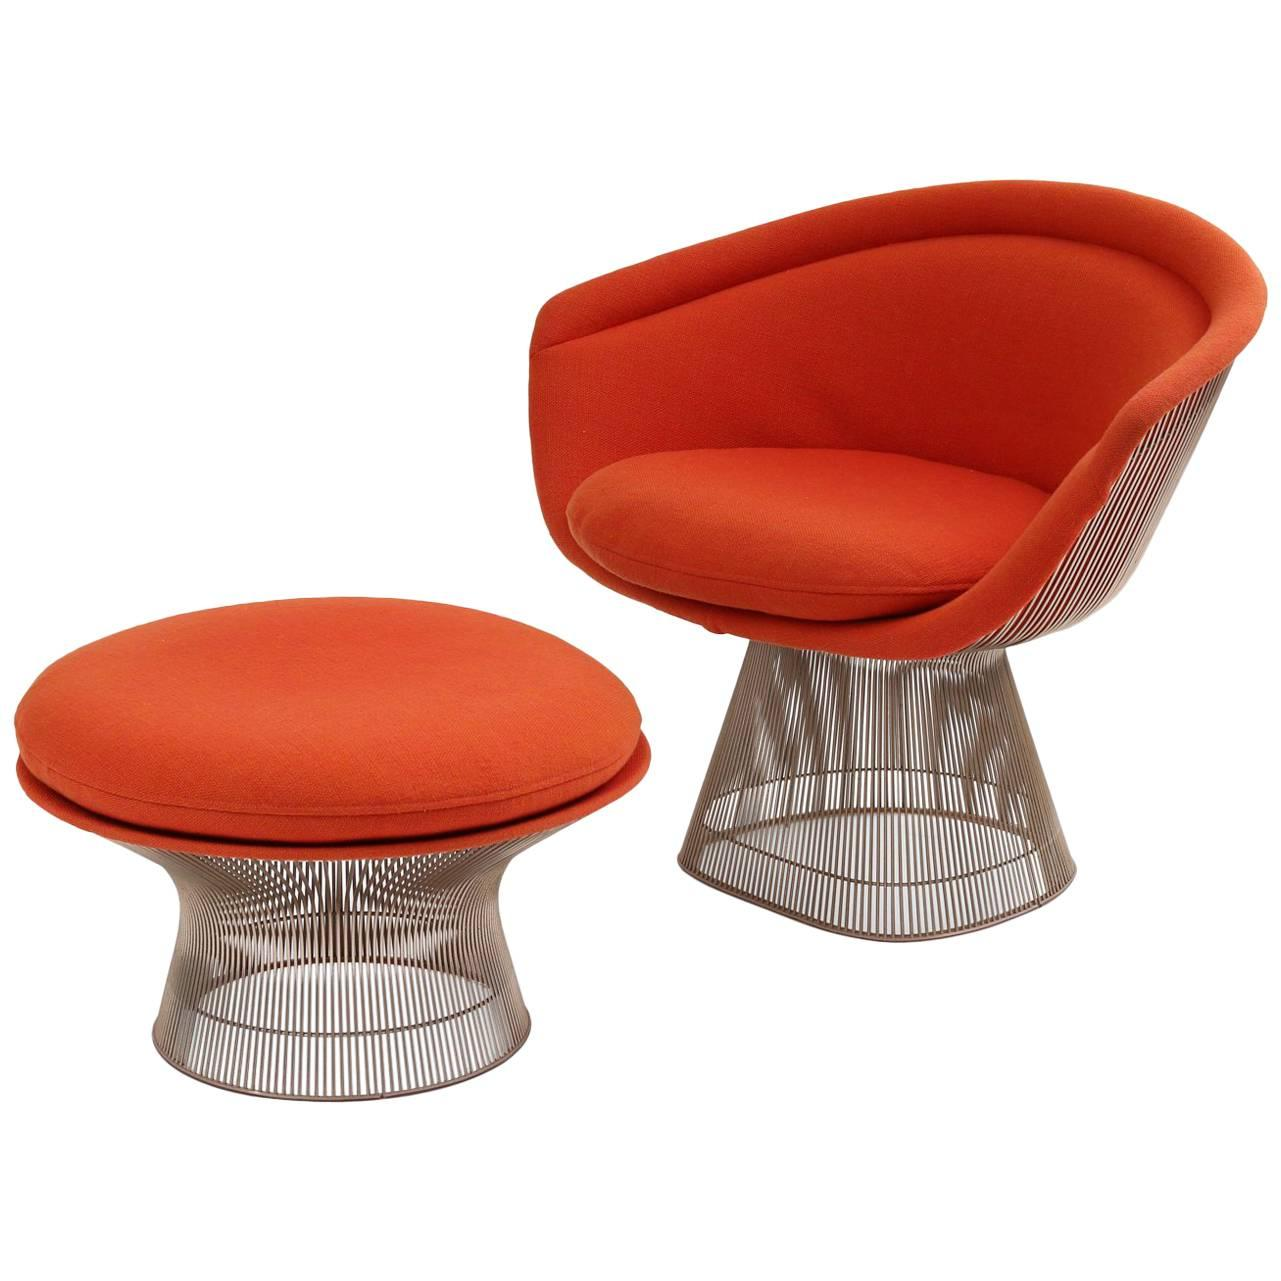 steelcase sofa platner wingback tom dixon warren furniture: chairs, dining tables, & more ...